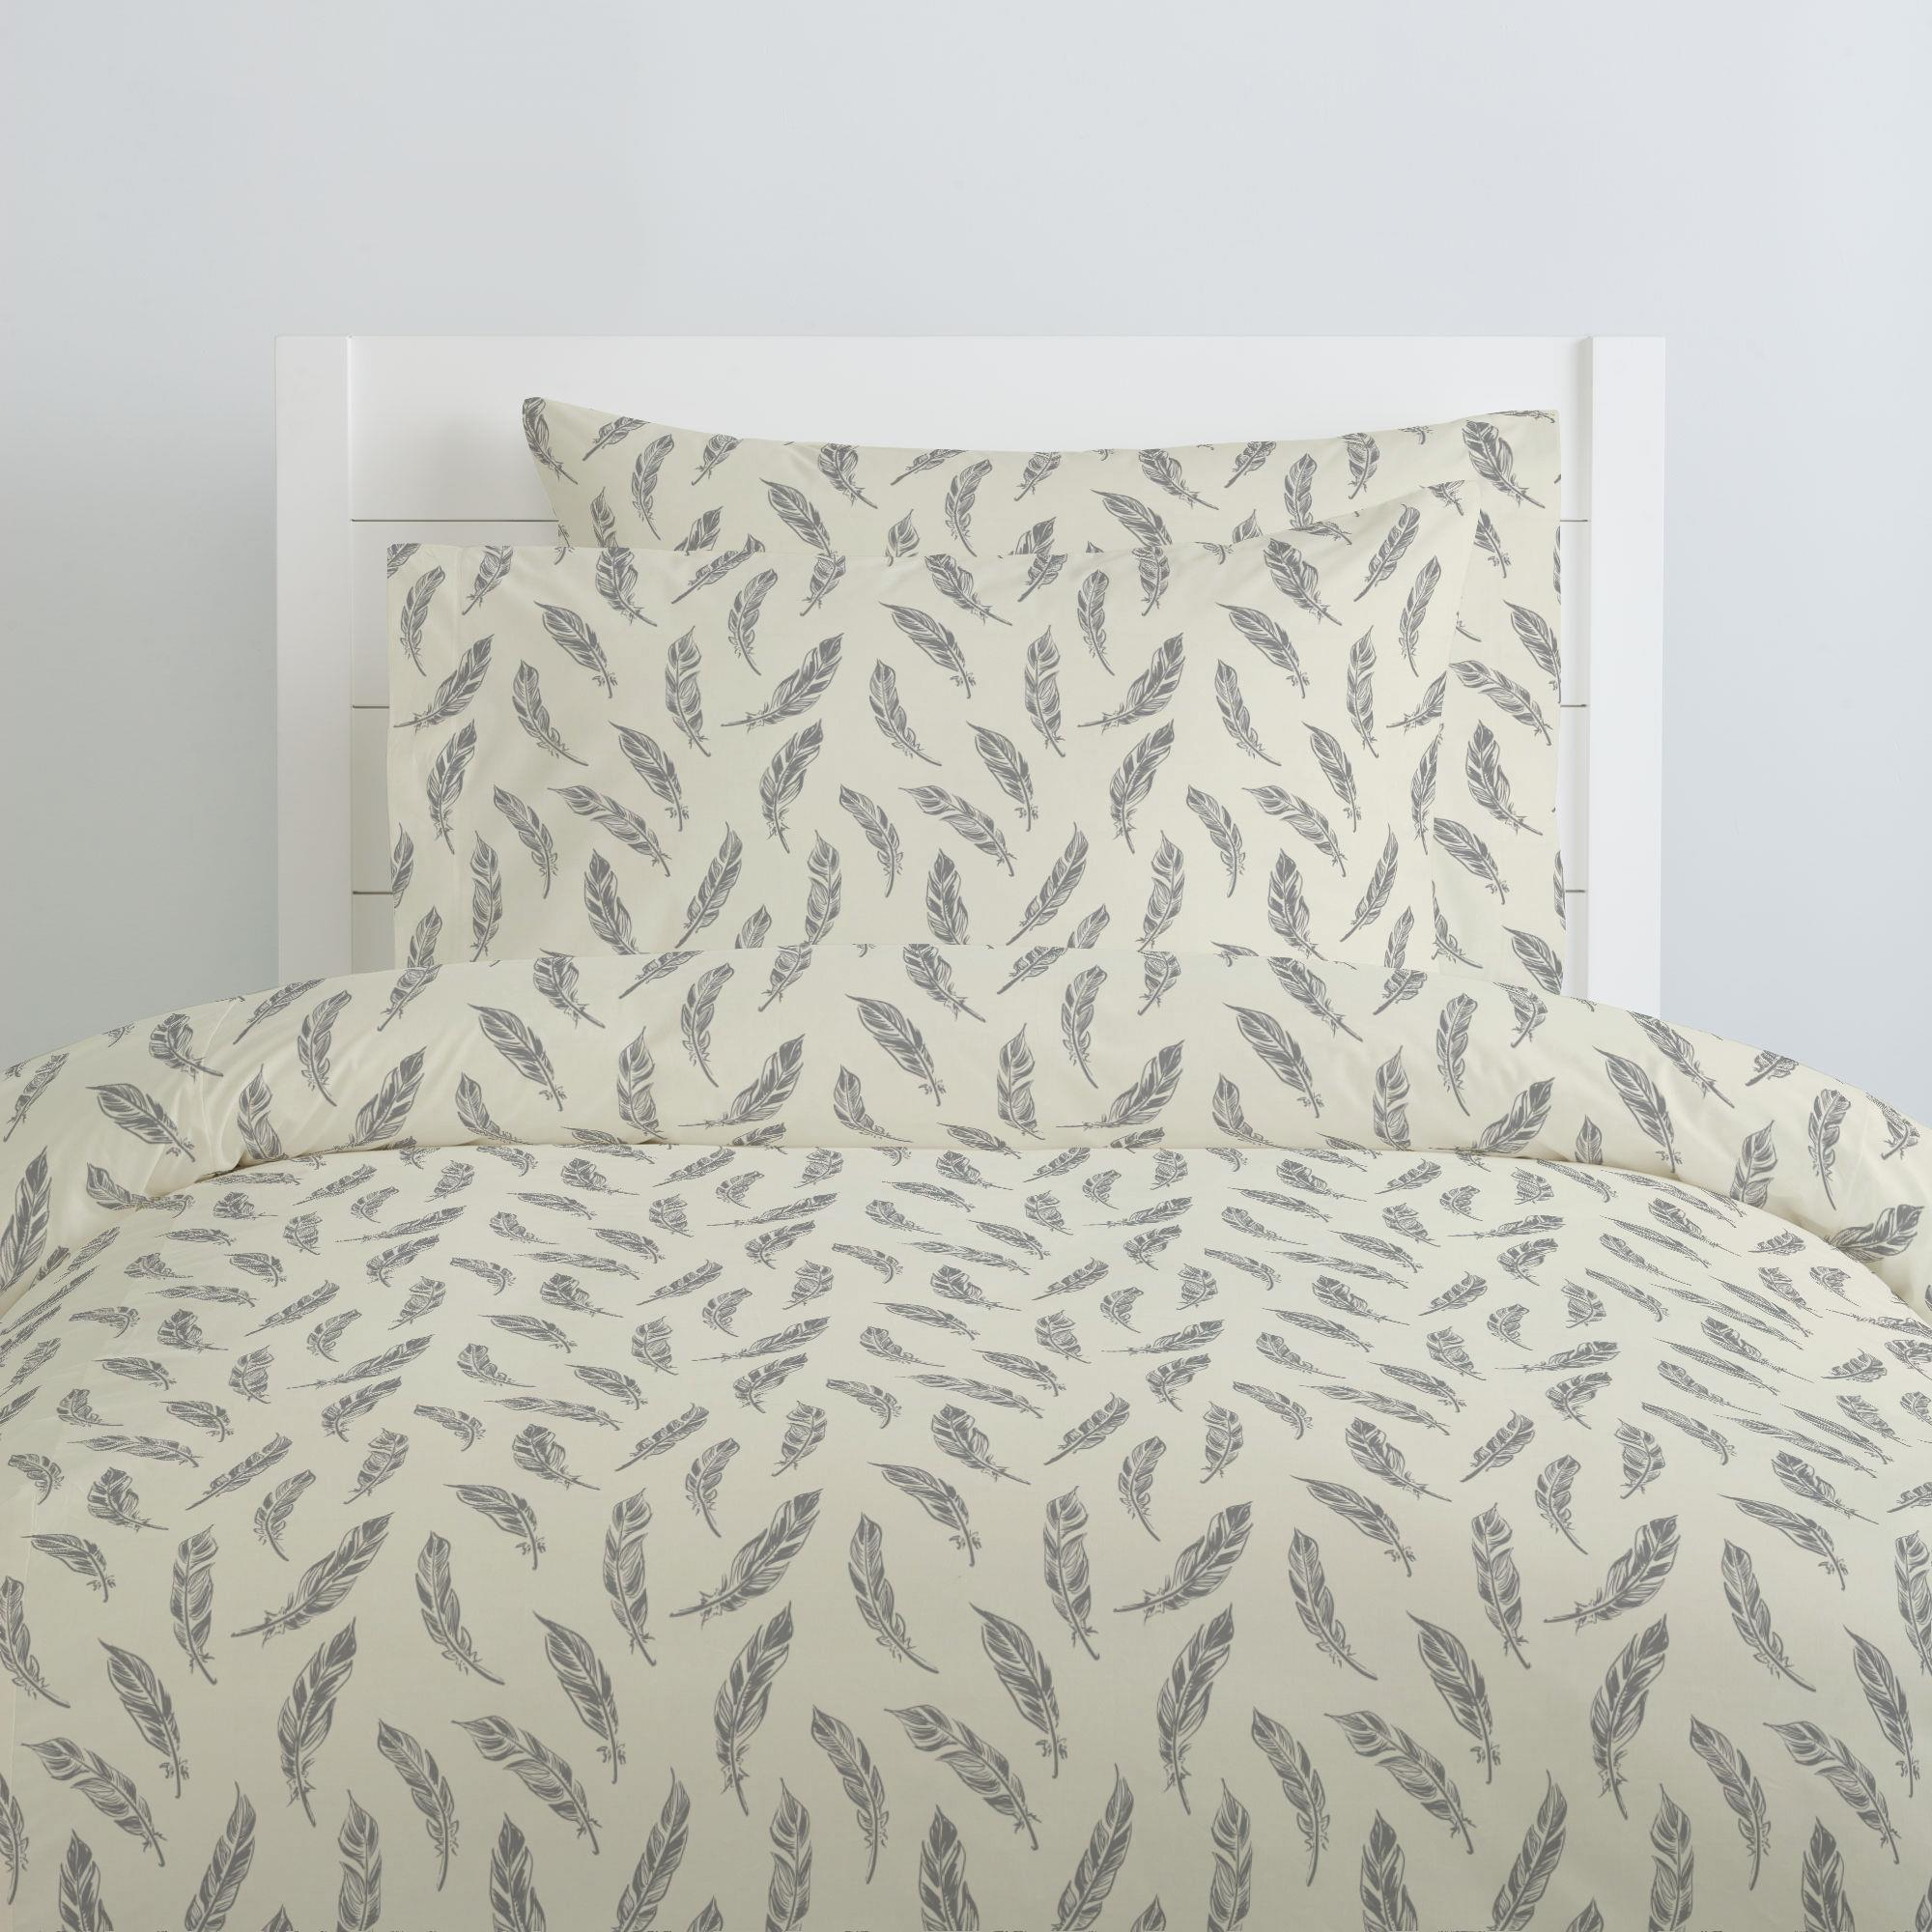 Natural Gray Feathers Pillow Case Carousel Designs